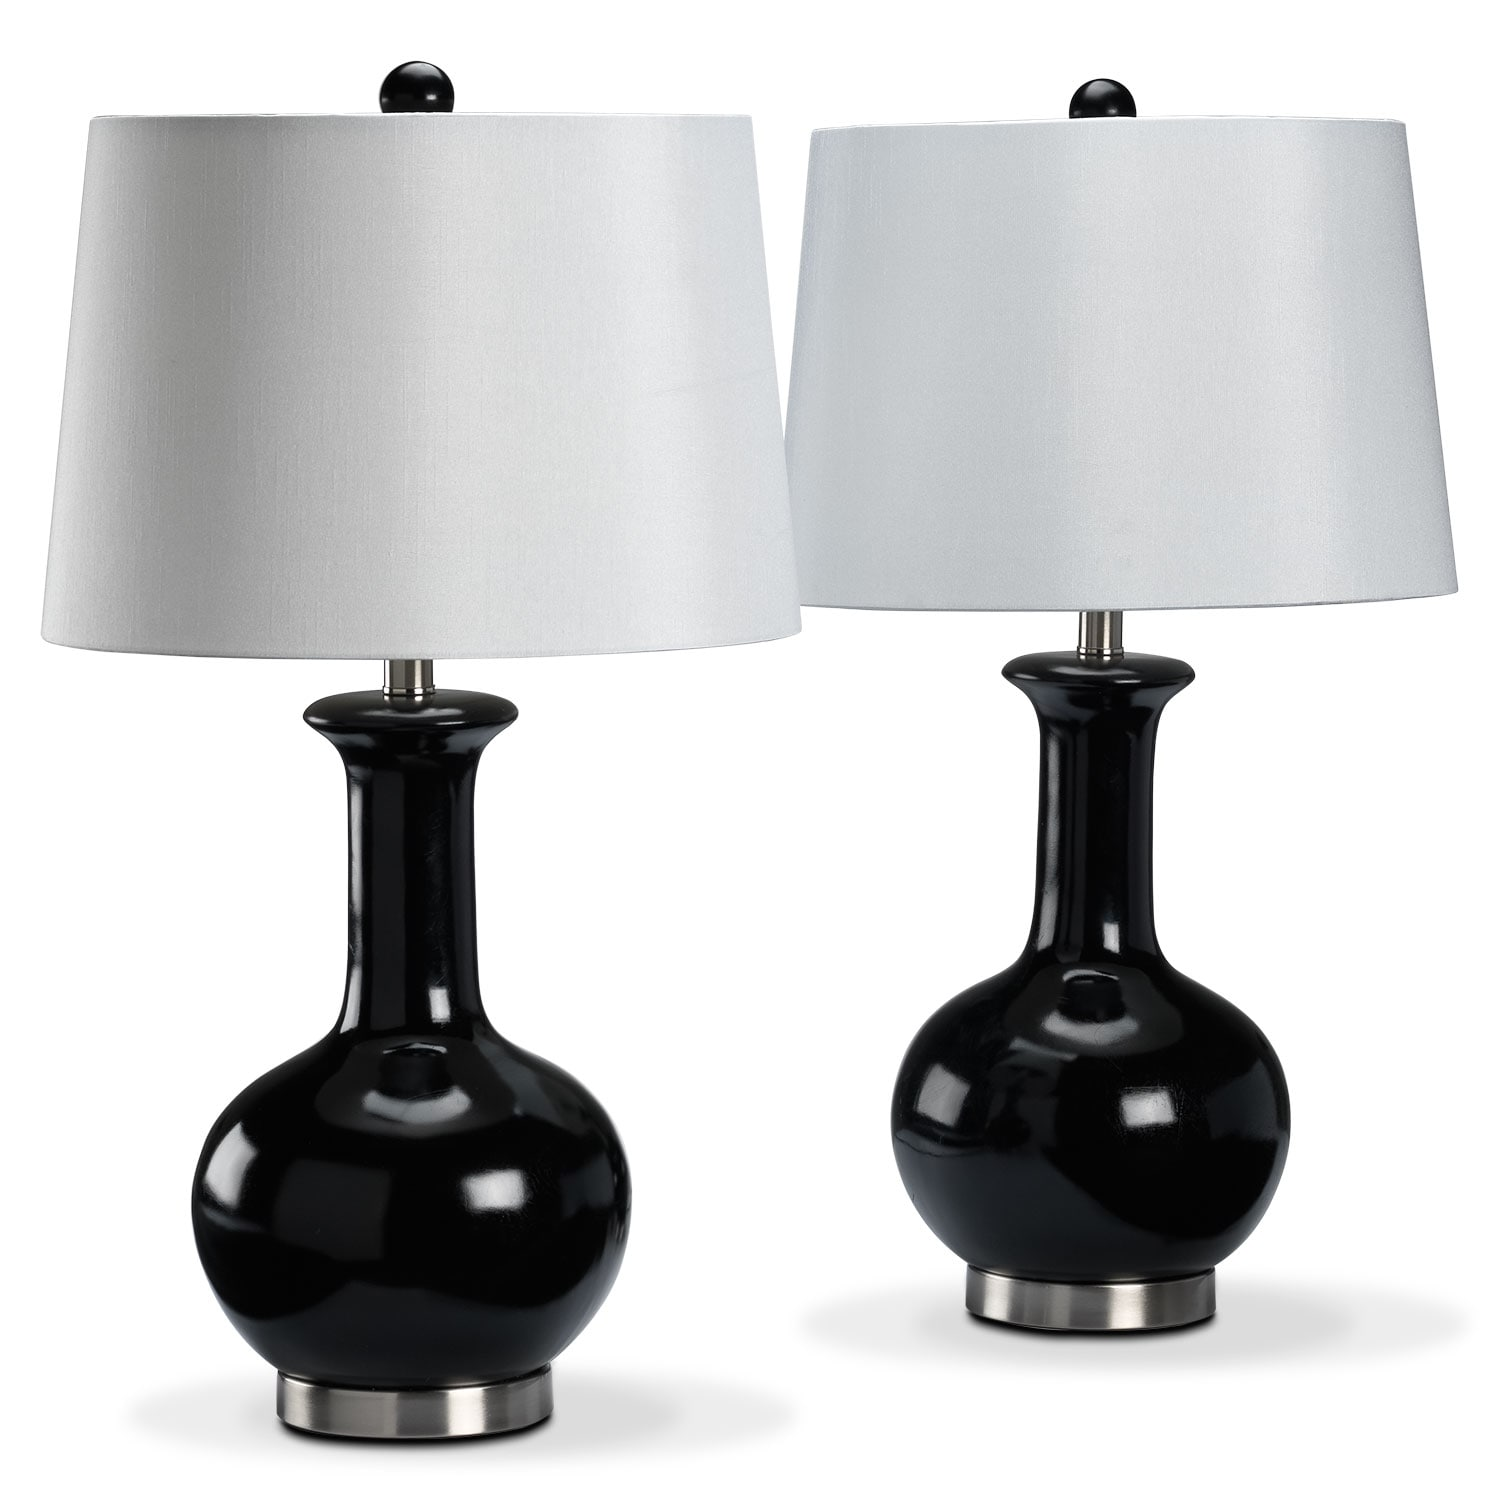 Home Accessories - Auden 2-Pack Table Lamps